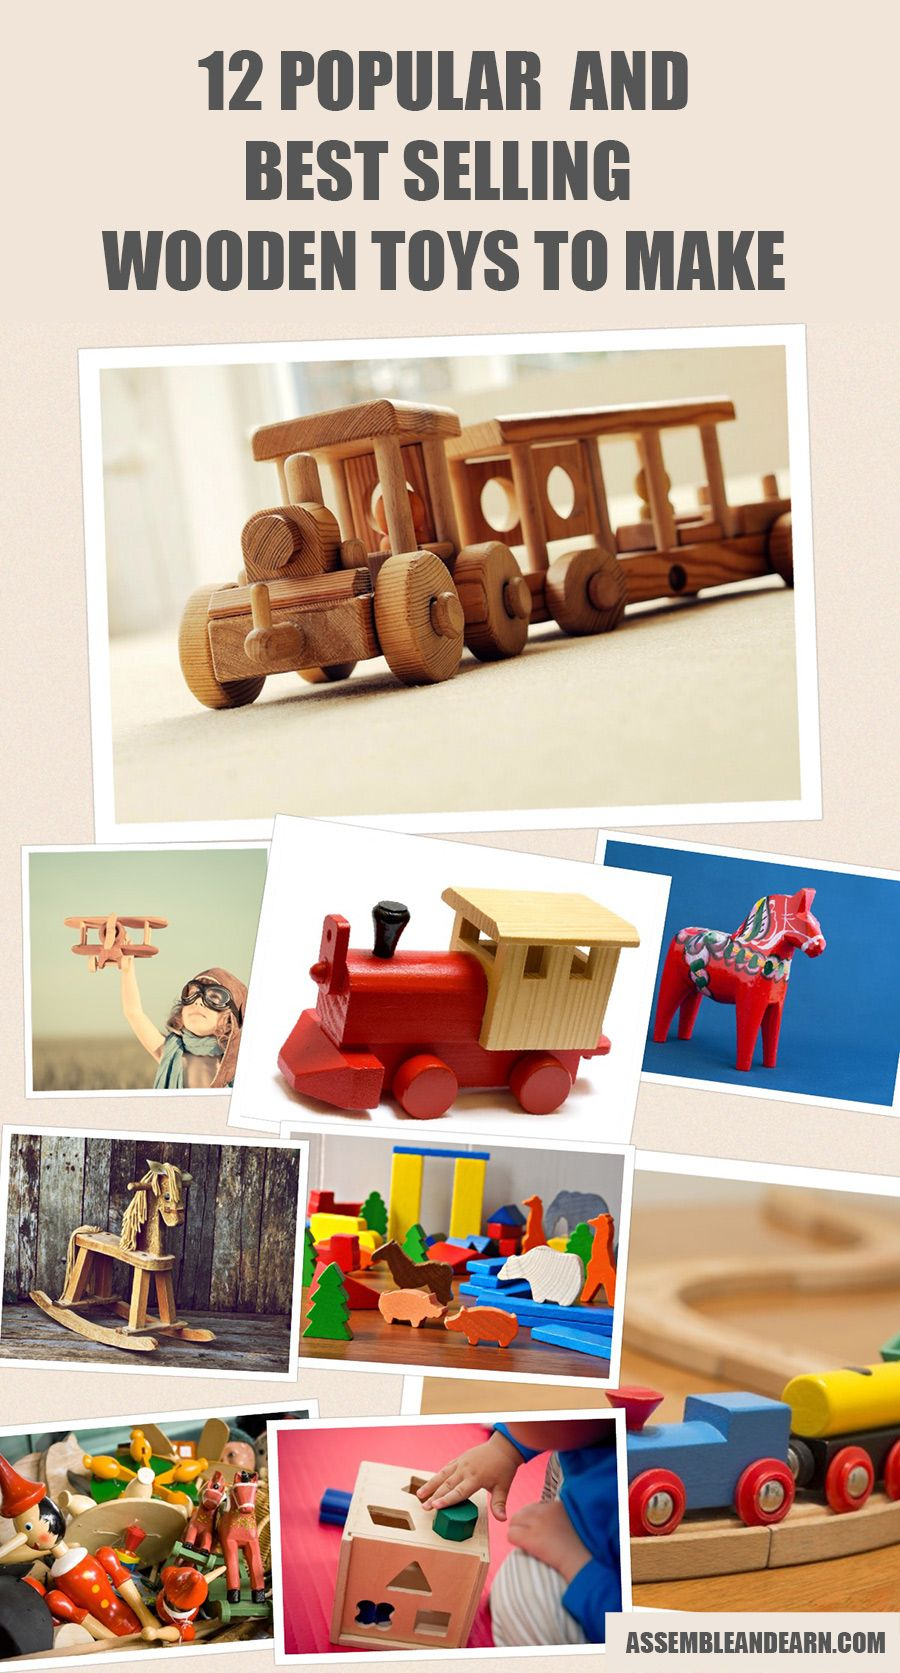 12 best selling wood toys | make money with woodworking